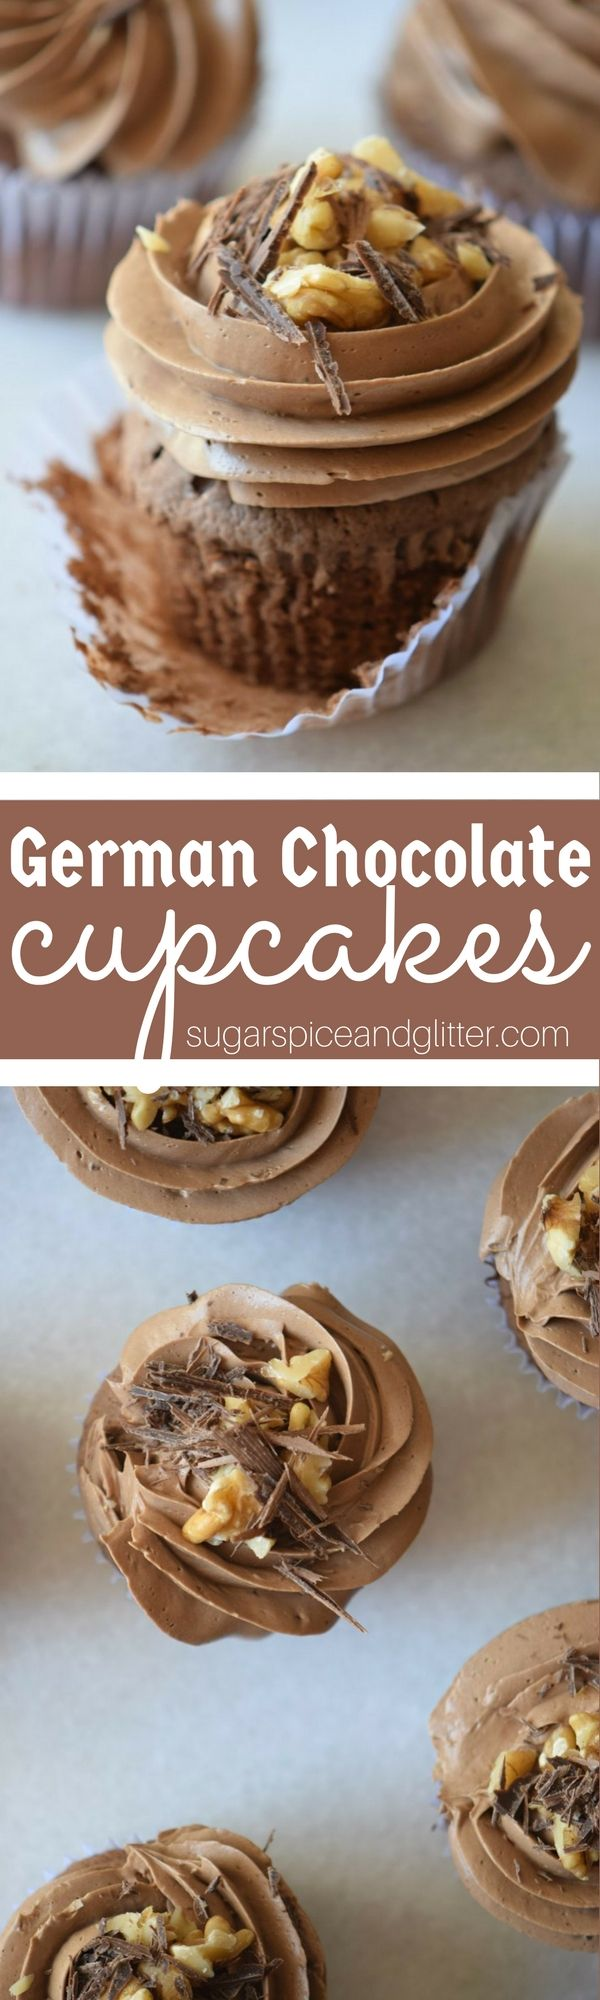 Authentic German Chocolate Cupcakes with tart chocolate frosting and a sticky coconut-pecan topping. These from-scratch chocolate cupcakes are perfect for the semi-sweet chocolate fan